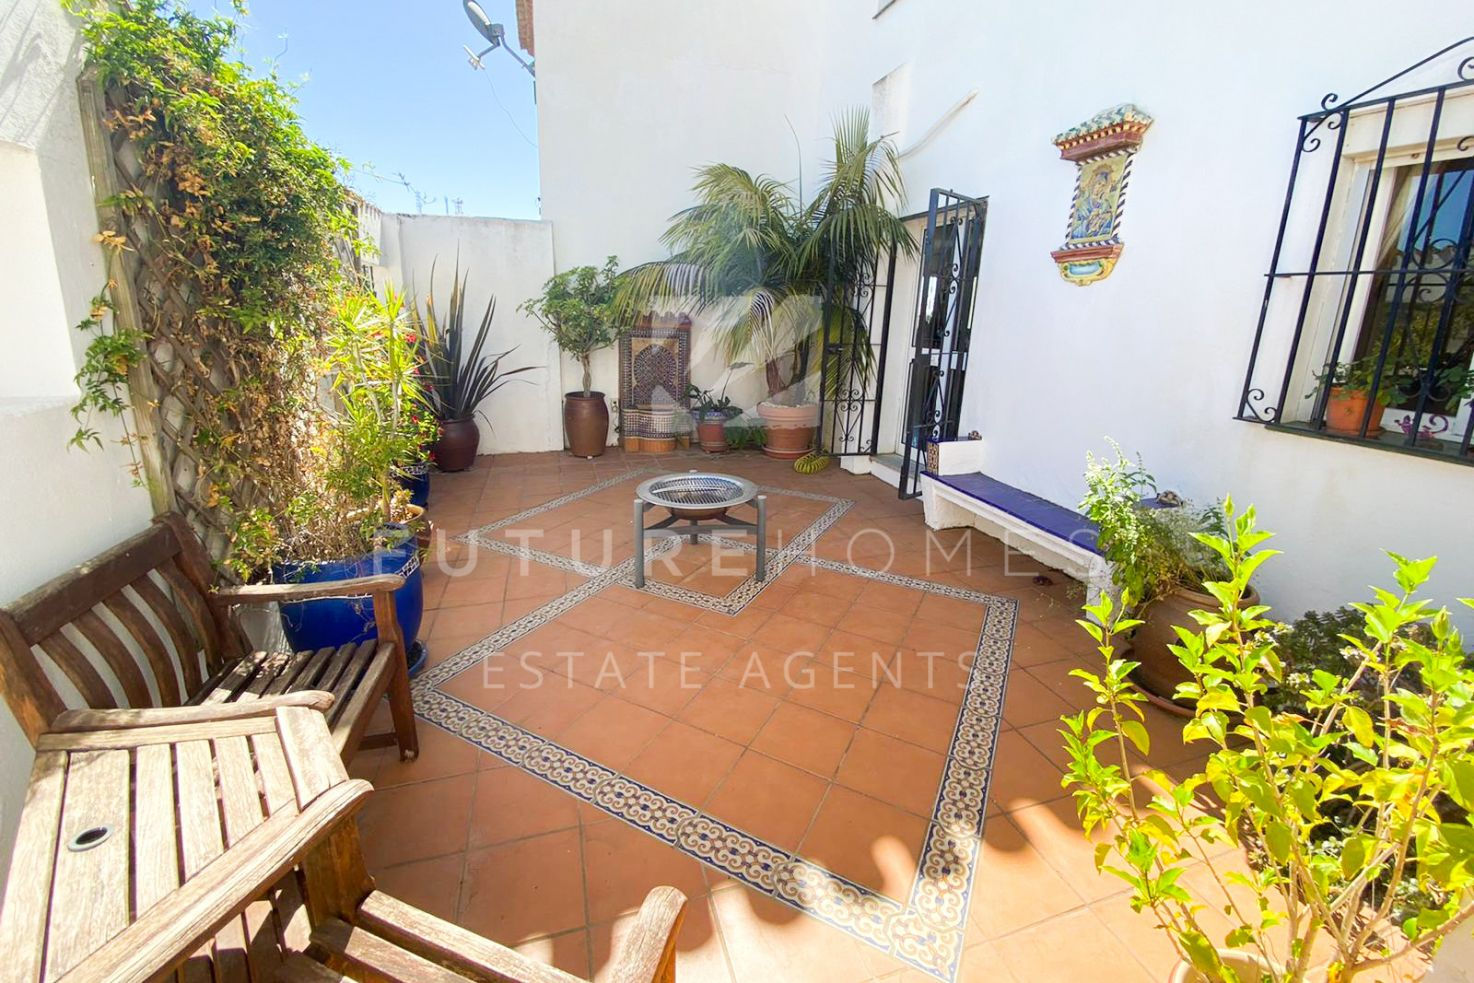 Very spacious Andalusian style villa only 1 km from the beach!